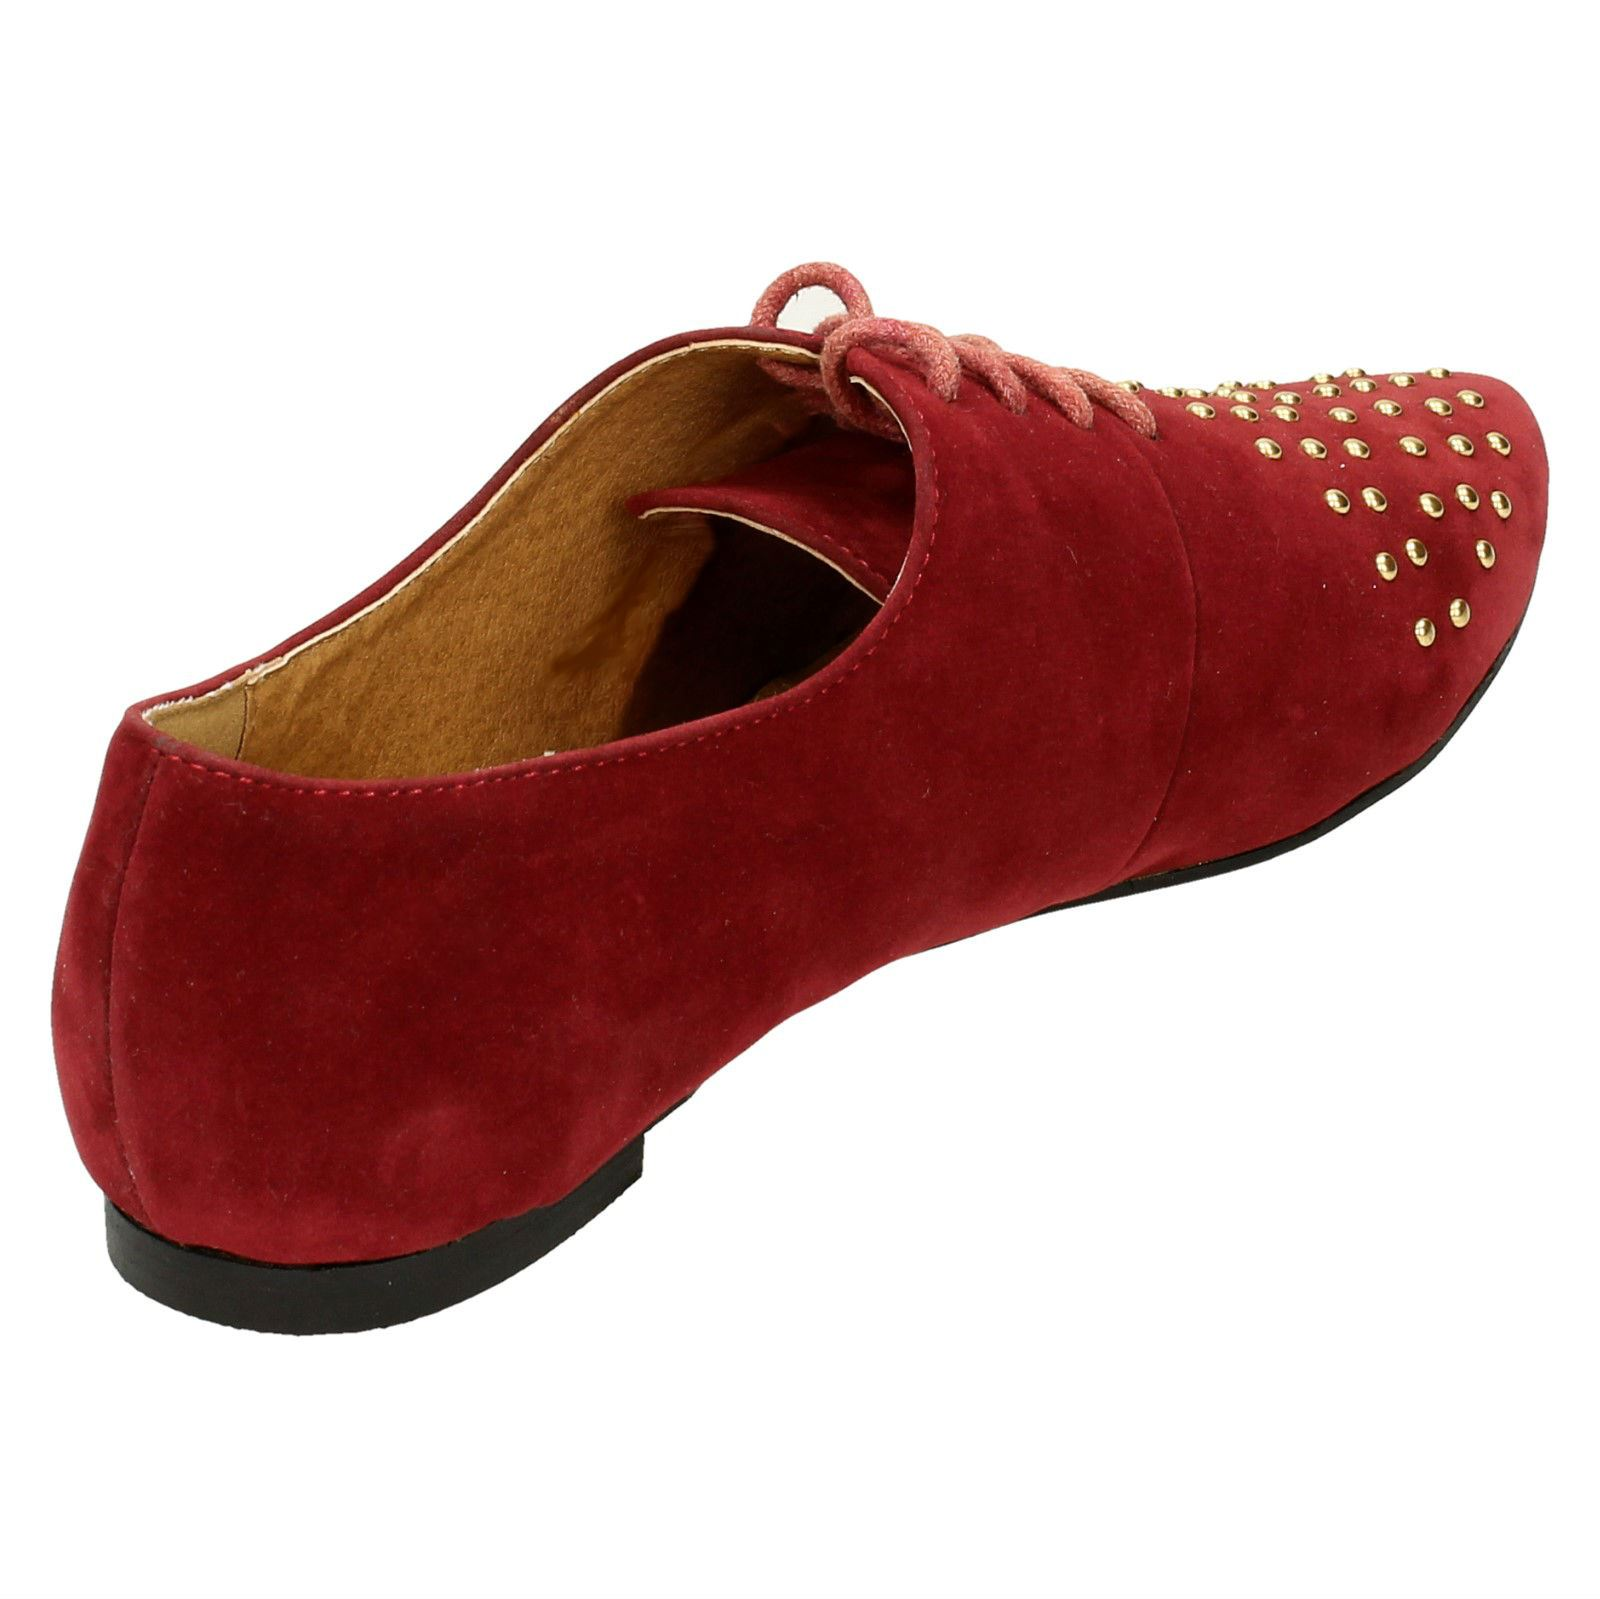 Spot-On-Ladies-Lace-Up-Shoes-with-Pointed-Toe thumbnail 15